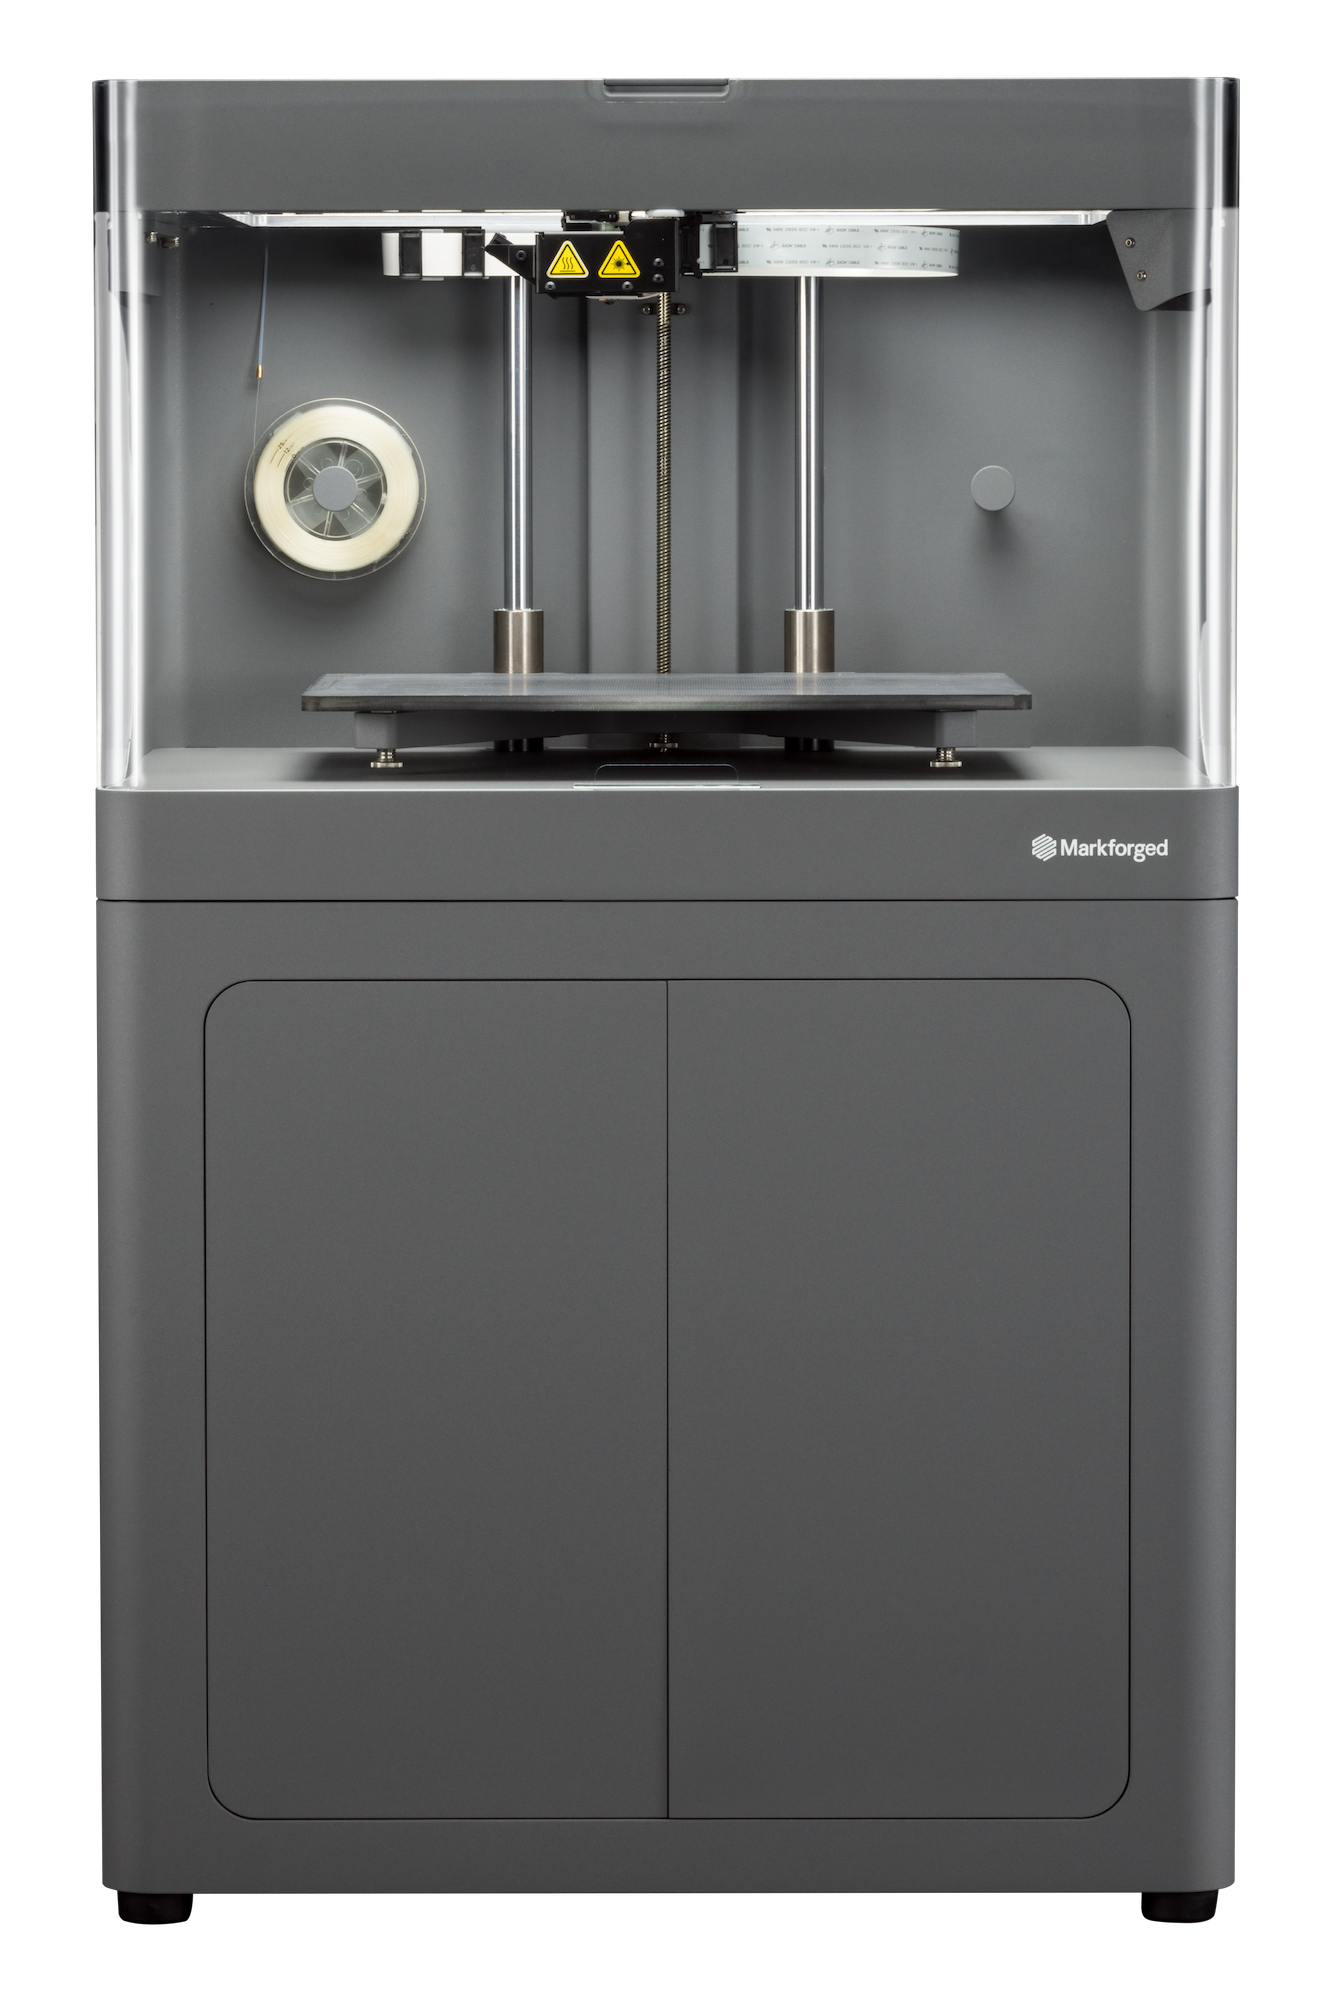 Markforged X5 Industrial-Grade 3D Printer